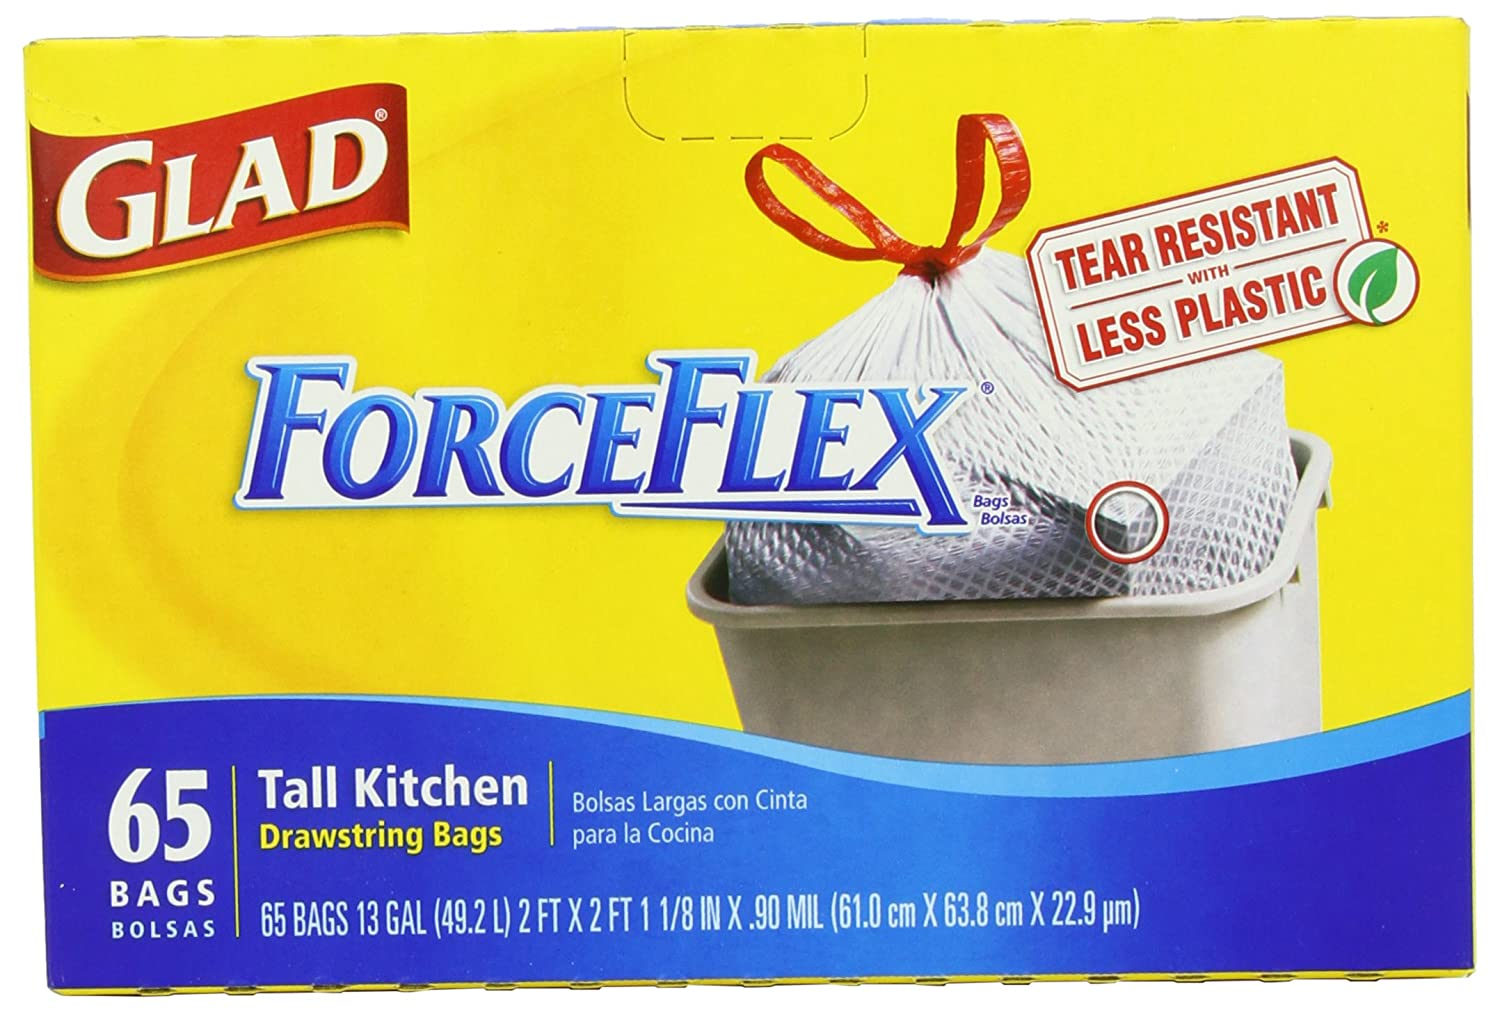 Amazon.com: Glad Forceflex Tall Kitchen Drawstring Garbage Bags, 65 Count: Health & Personal Care